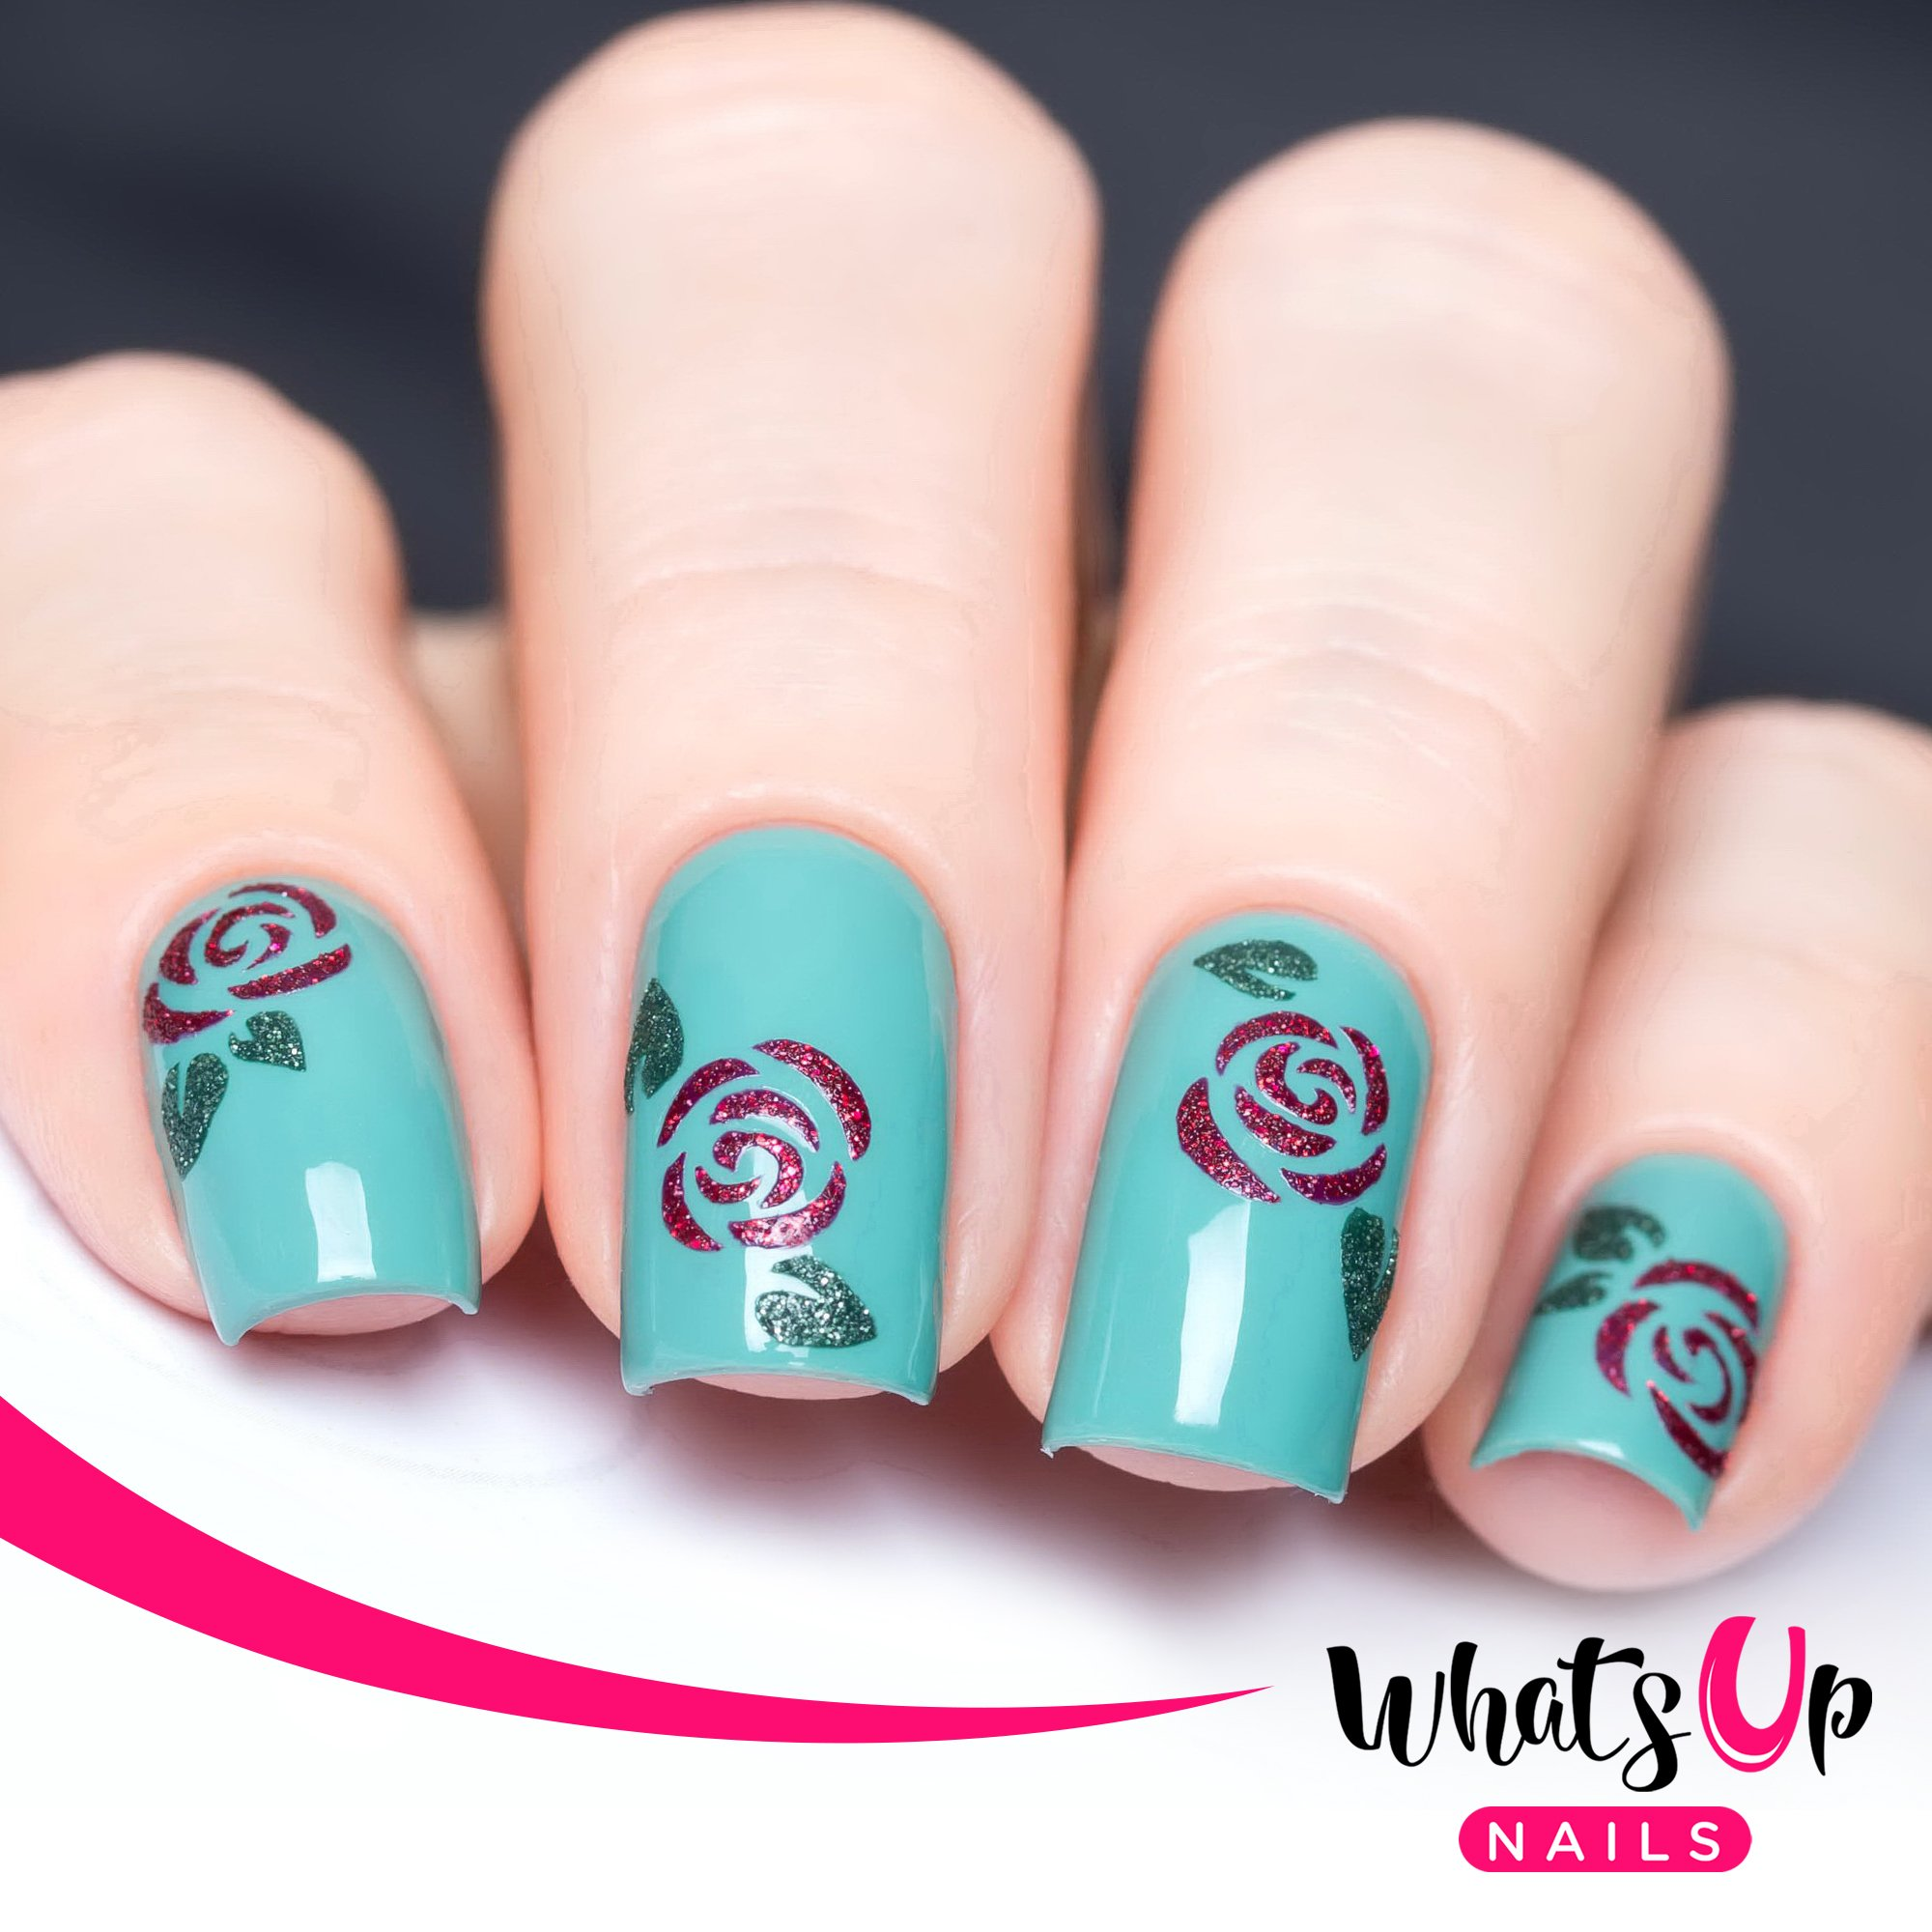 Amazon.com : Whats Up Nails - Orchids Vinyl Stencils for Nail Art ...